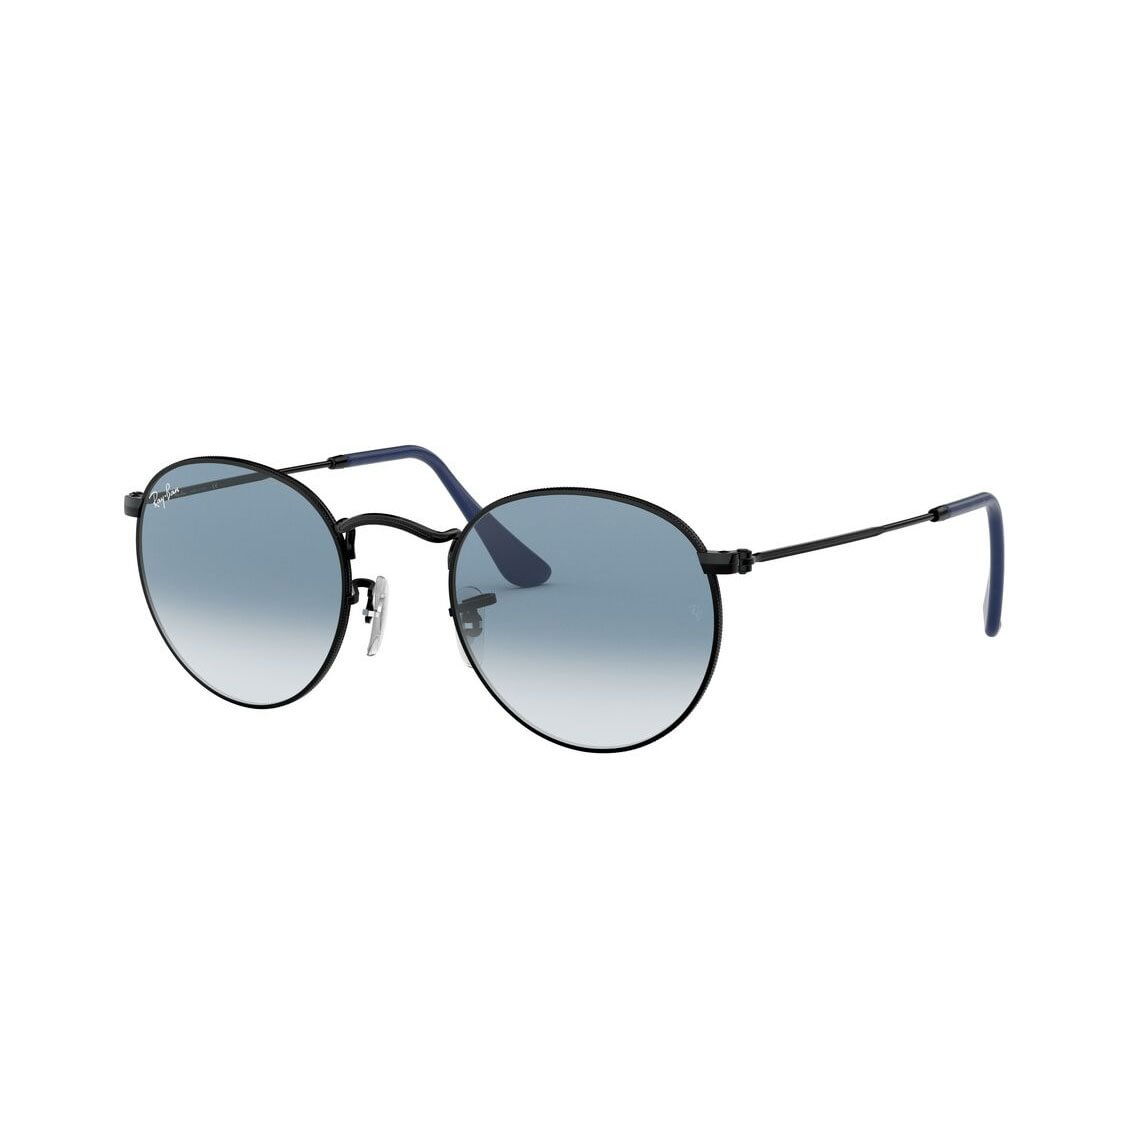 Ray-Ban Round metal RB3447 006/3F 50